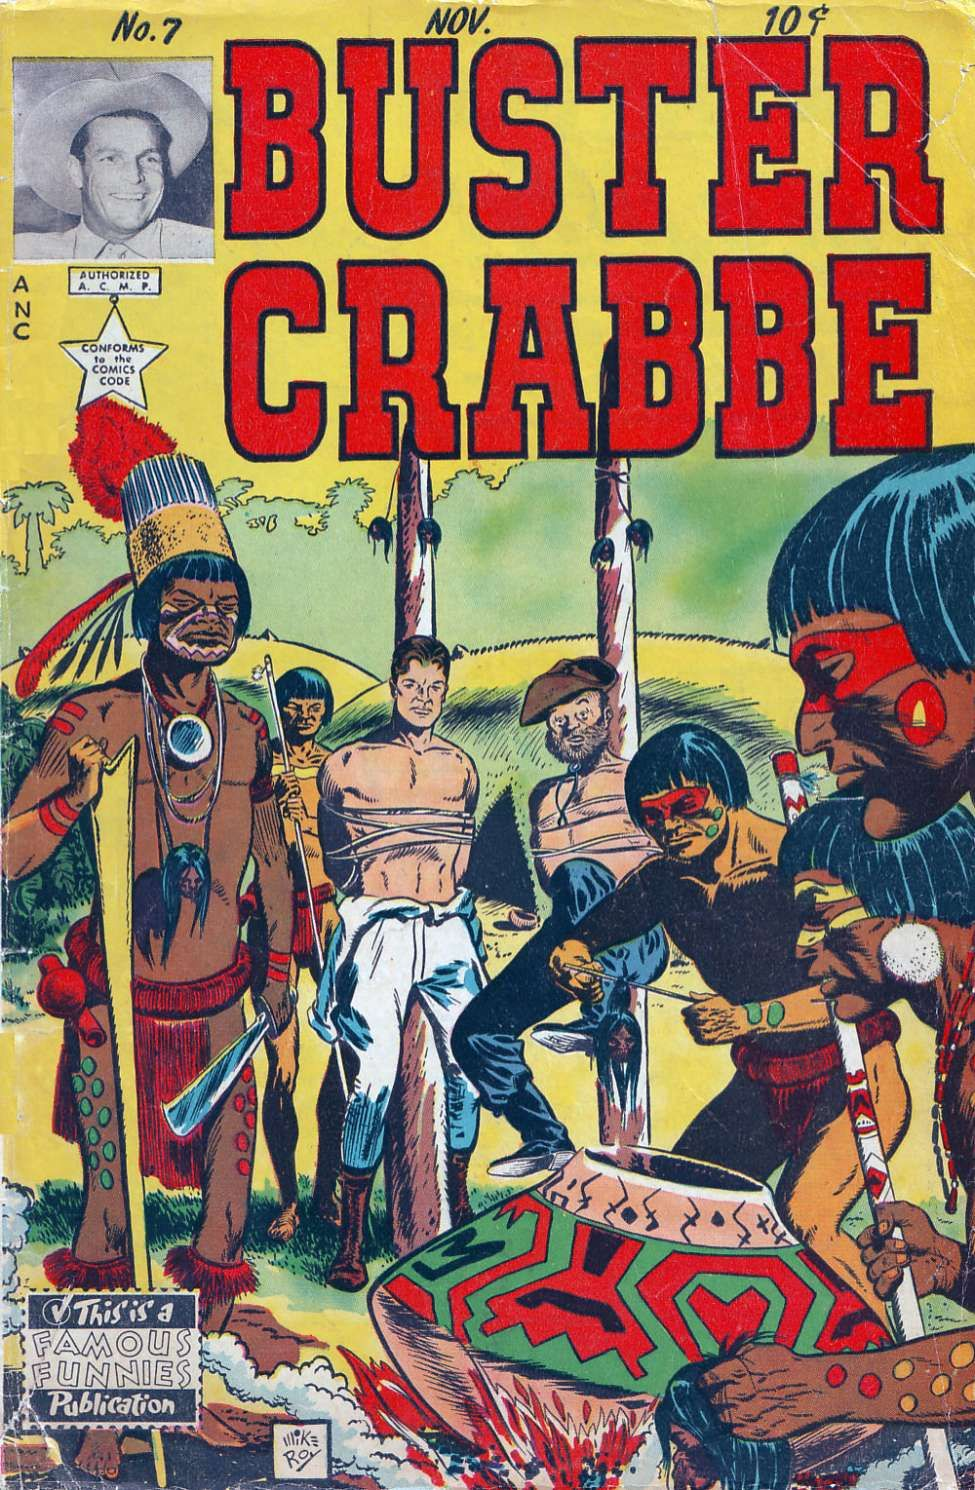 Pin By Dante On Vintage Comic Covers Old Comic Books Western Comics Vintage Comic Books